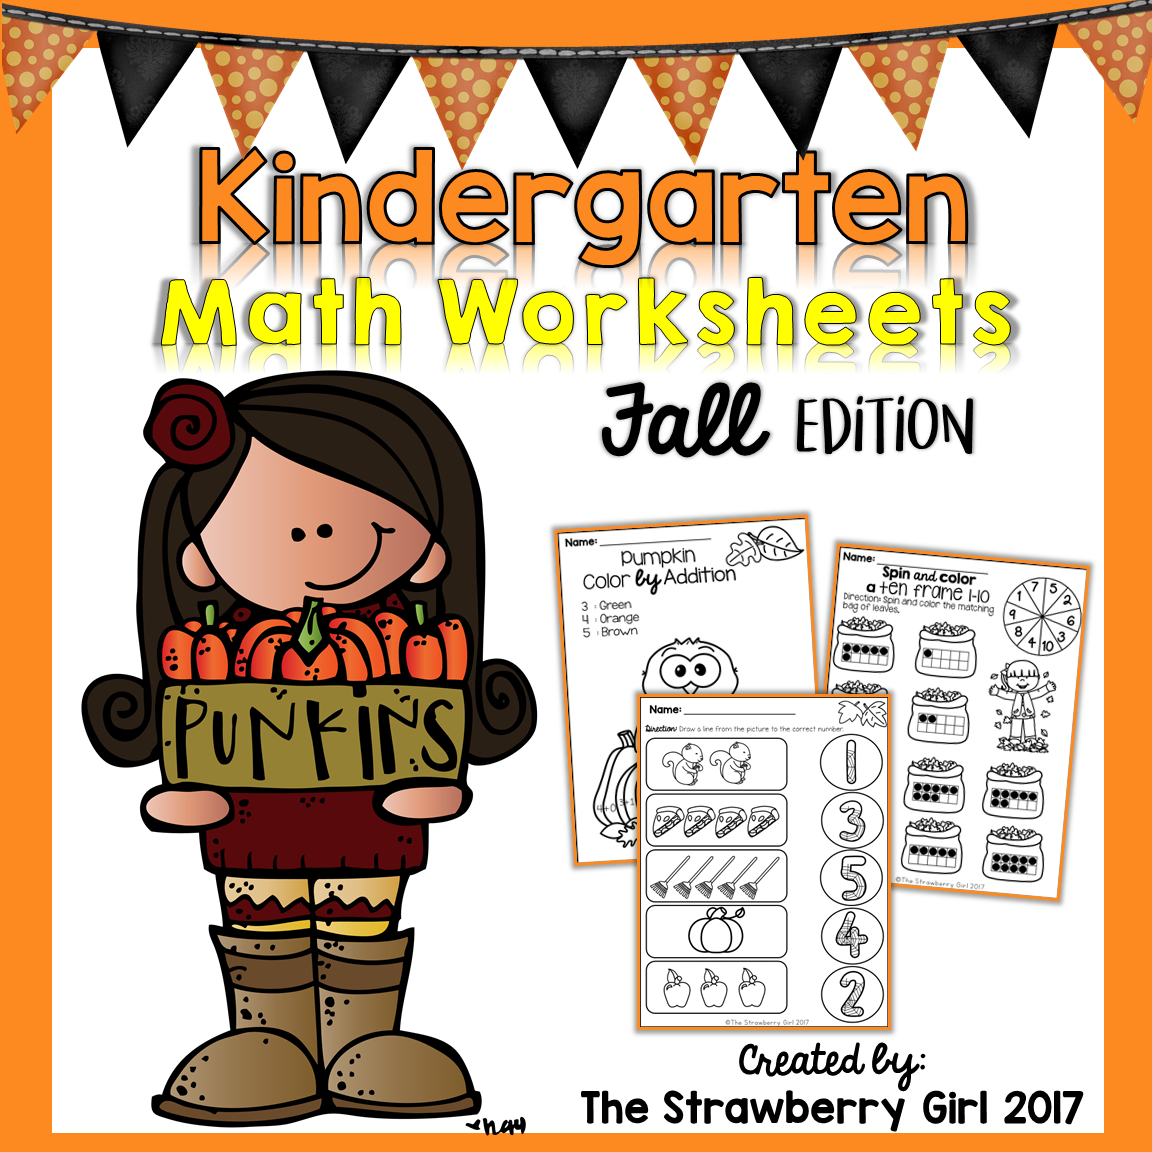 The Kindergarten Math Worksheets Packet Is Filled With Fun